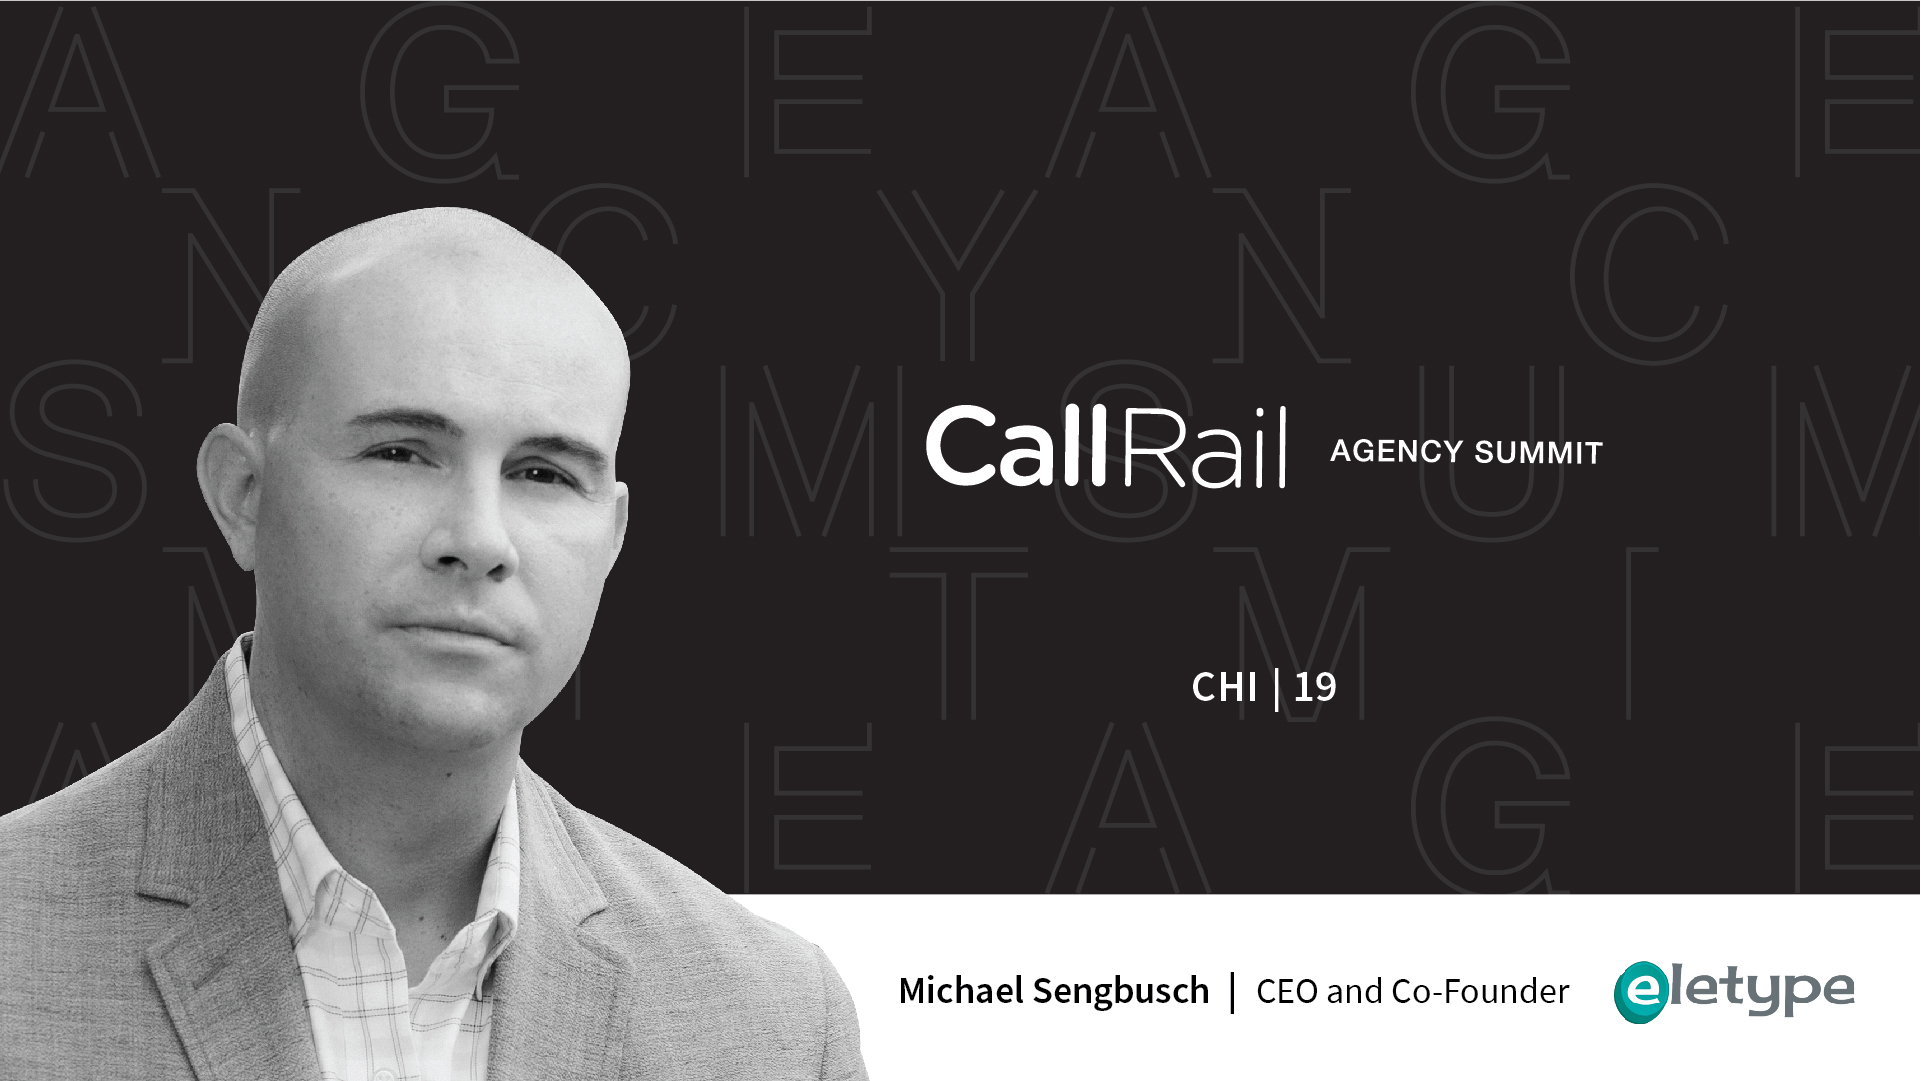 Call Rail Agency Summit Chicago 2019